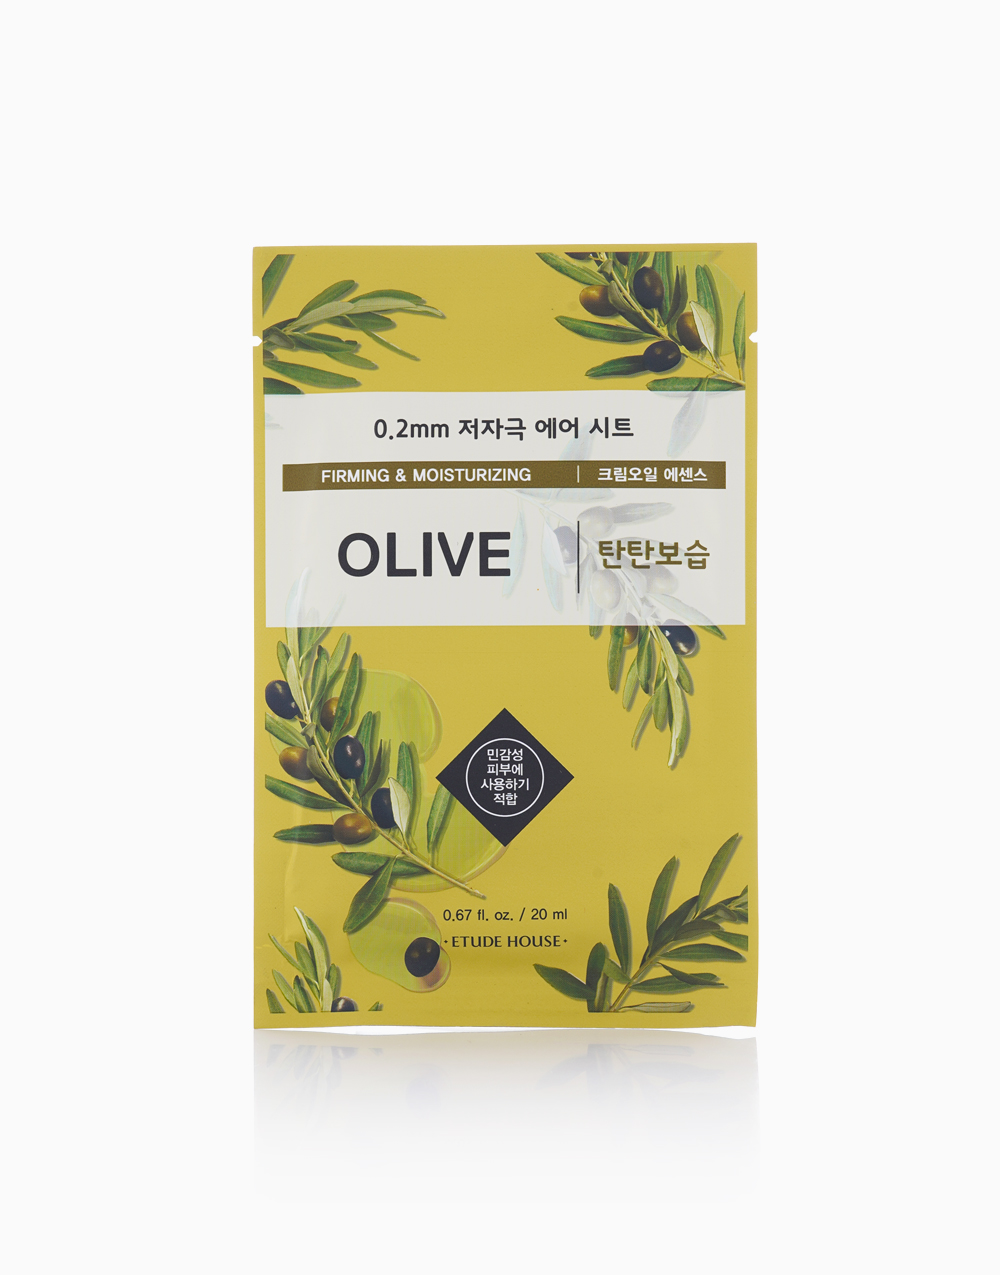 Olive Therapy Air Mask (20ml) by Etude House